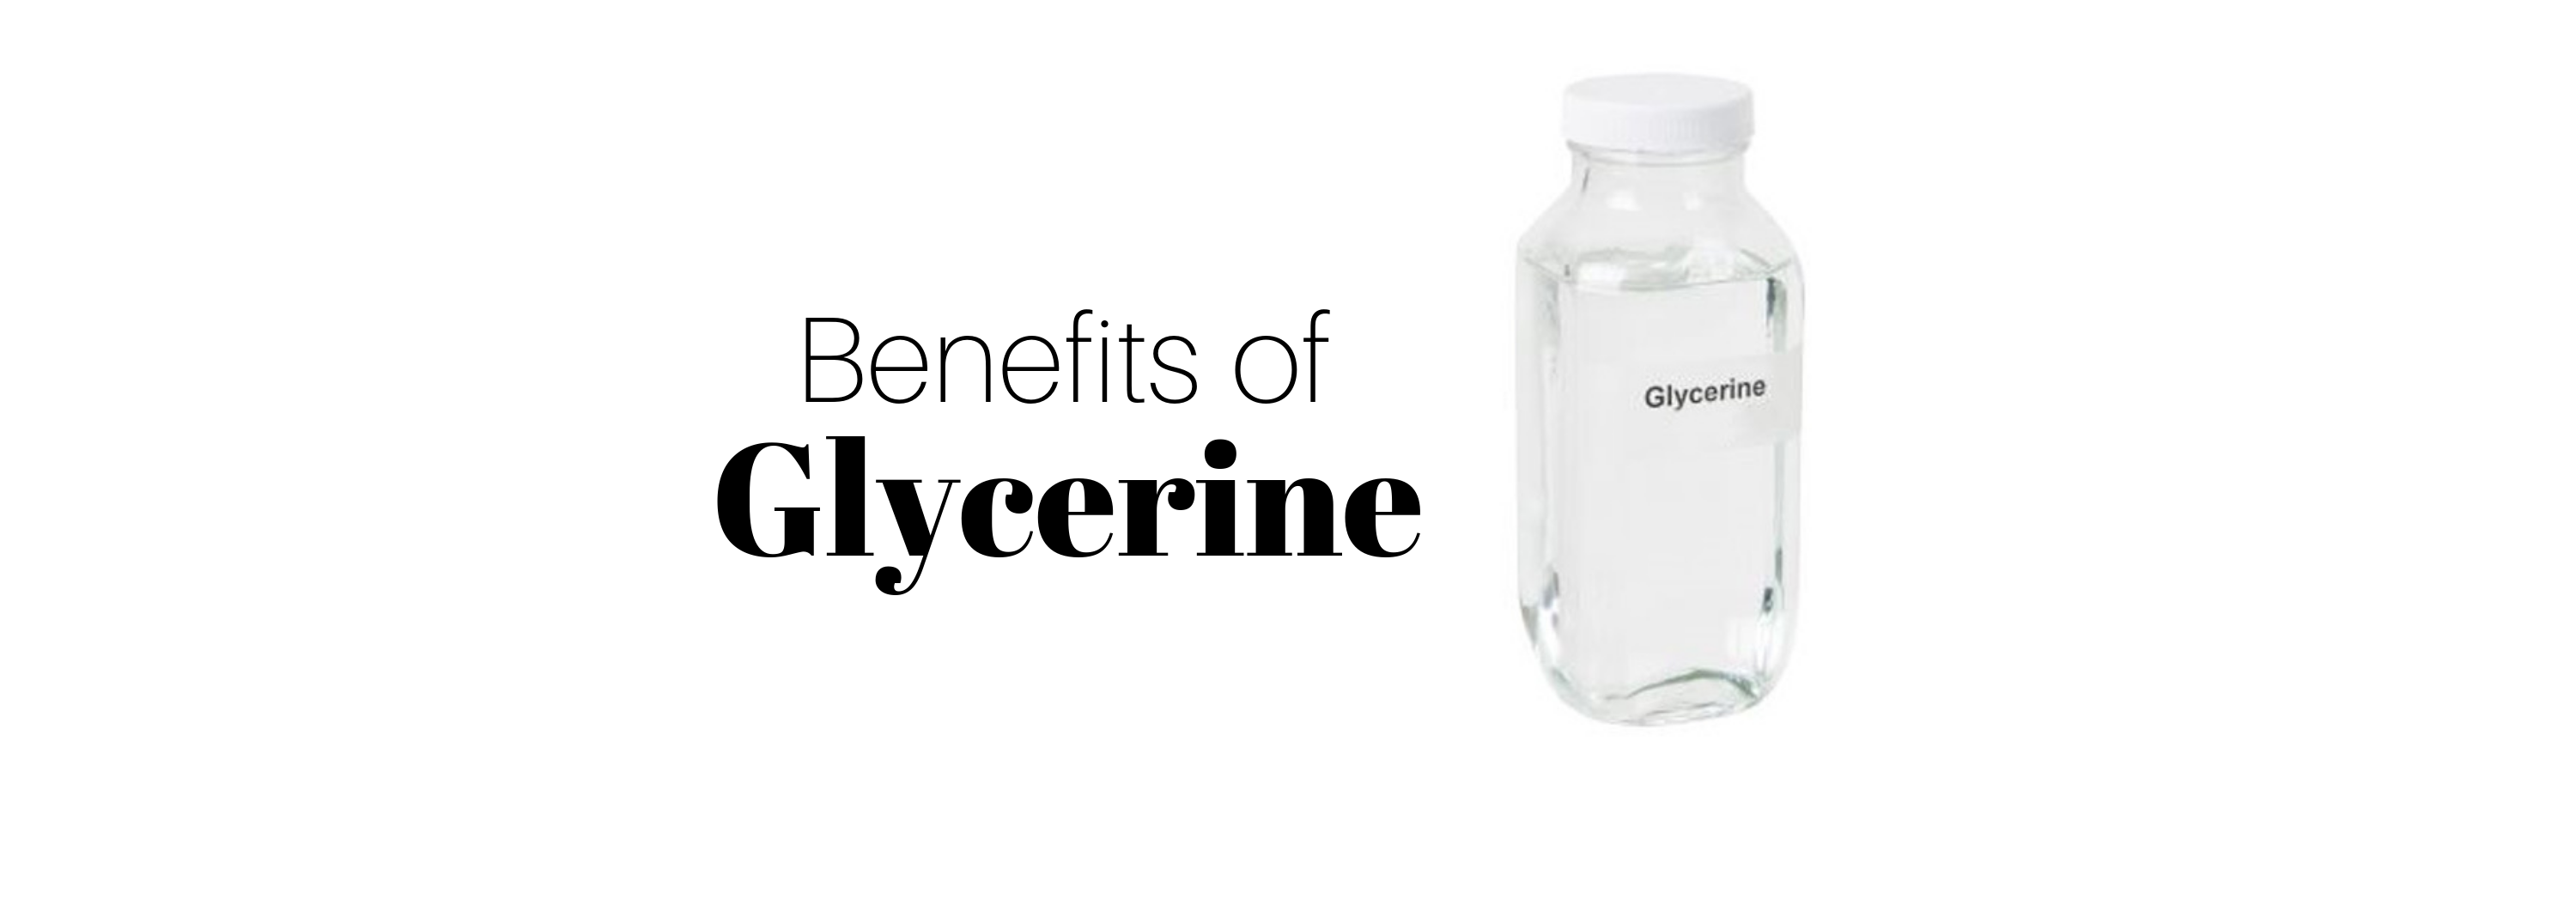 benefits of glycerin